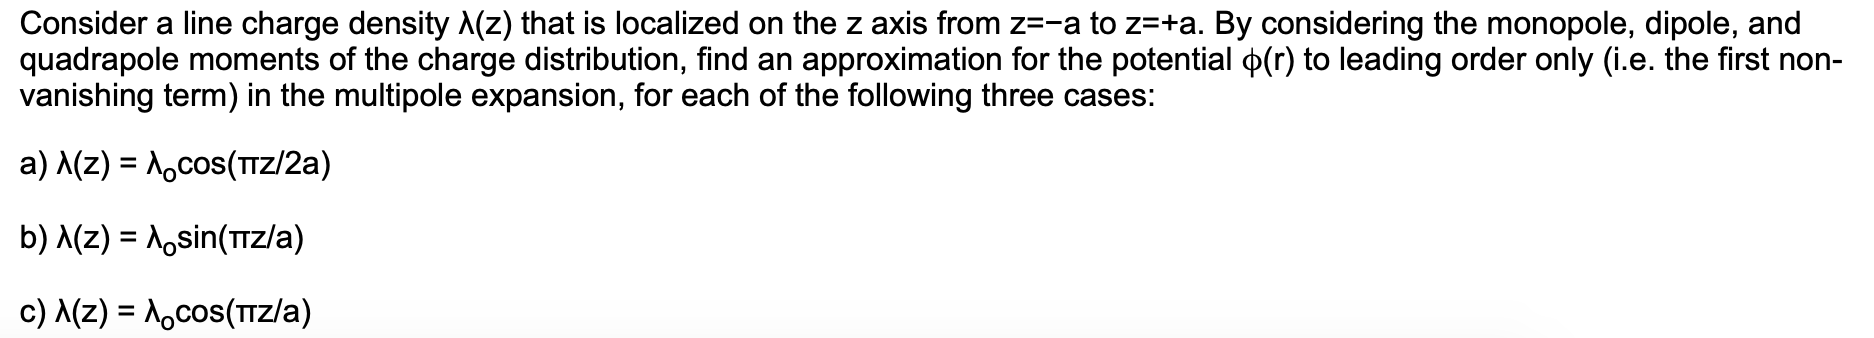 Consider a line charge density A(z) that is localized on the z axis from z=-a to z=+a. By considering the monopole, dipole, and quadrapole moments of the charge distribution, find an approximation for the potential p(r) to leading order only (i.e. the first non- vanishing term) in the multipole expansion, for each of the following three cases: a) A(z) Acos(TZ/2a) b) A(z) Aosin(TZ/a) c) MZ) Aocos(Tz/a)